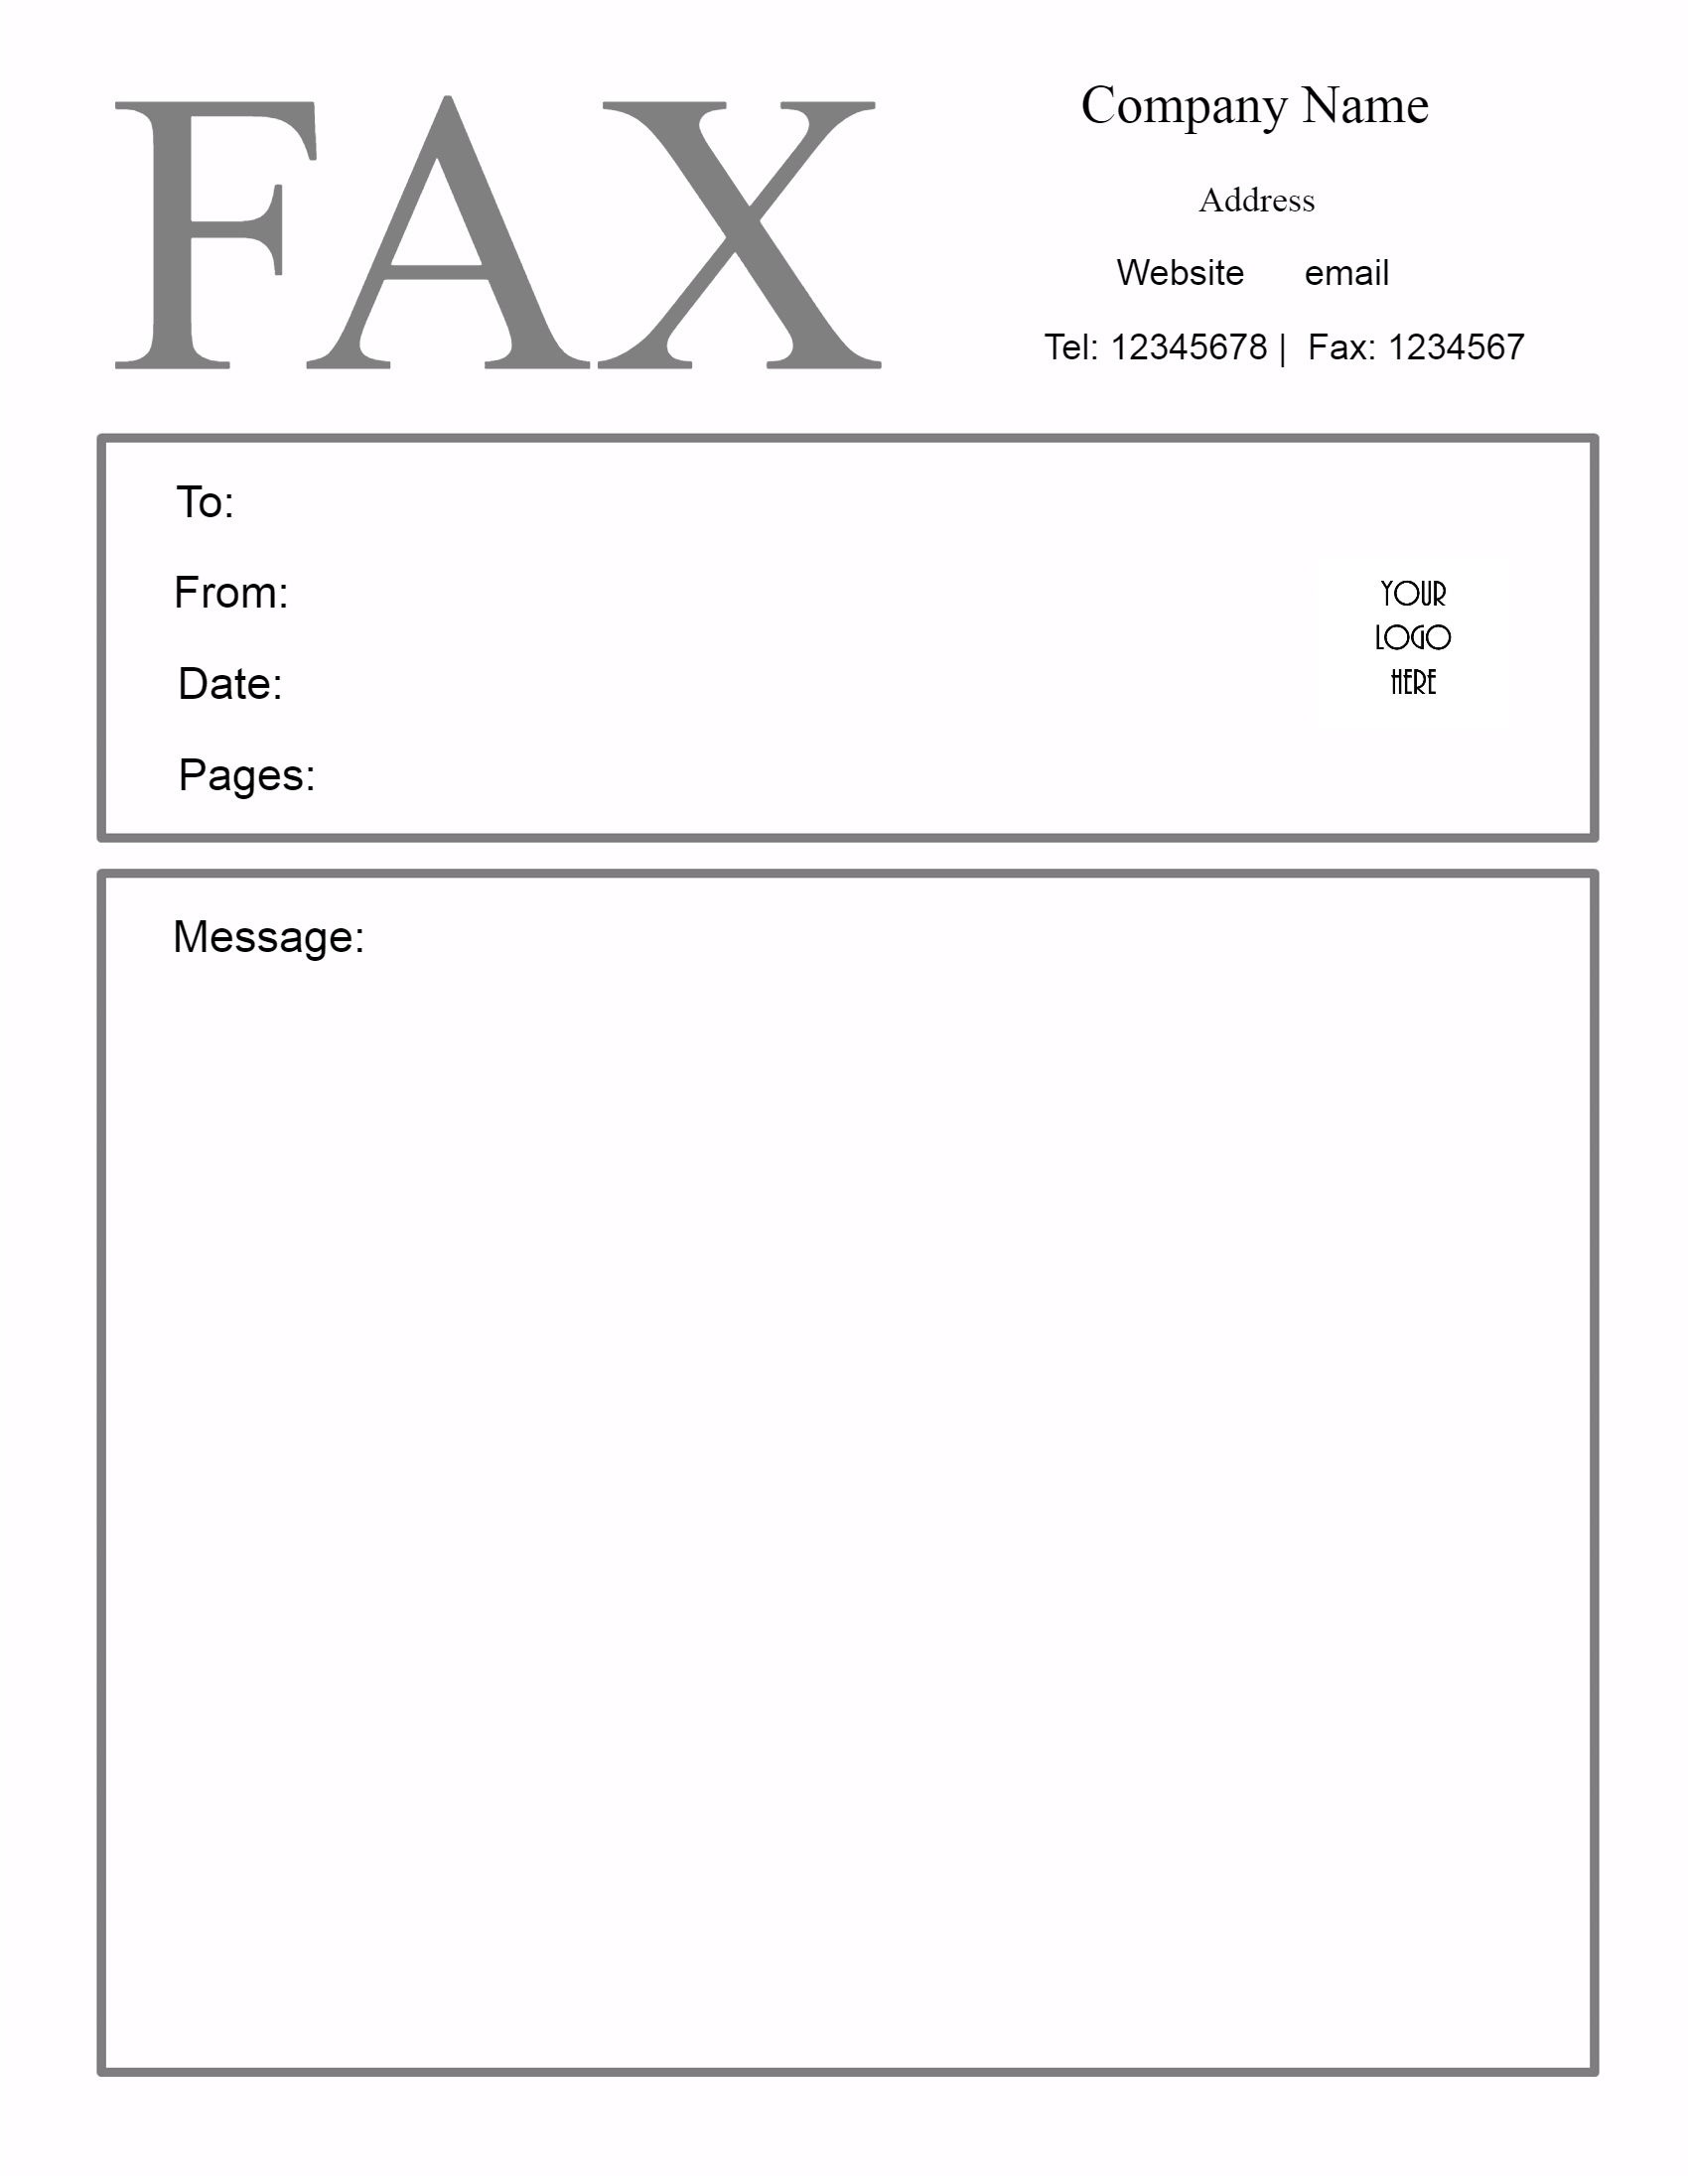 Free Fax Cover Sheet Template   Customize Online Then Print - Free Printable Cover Letter For Fax